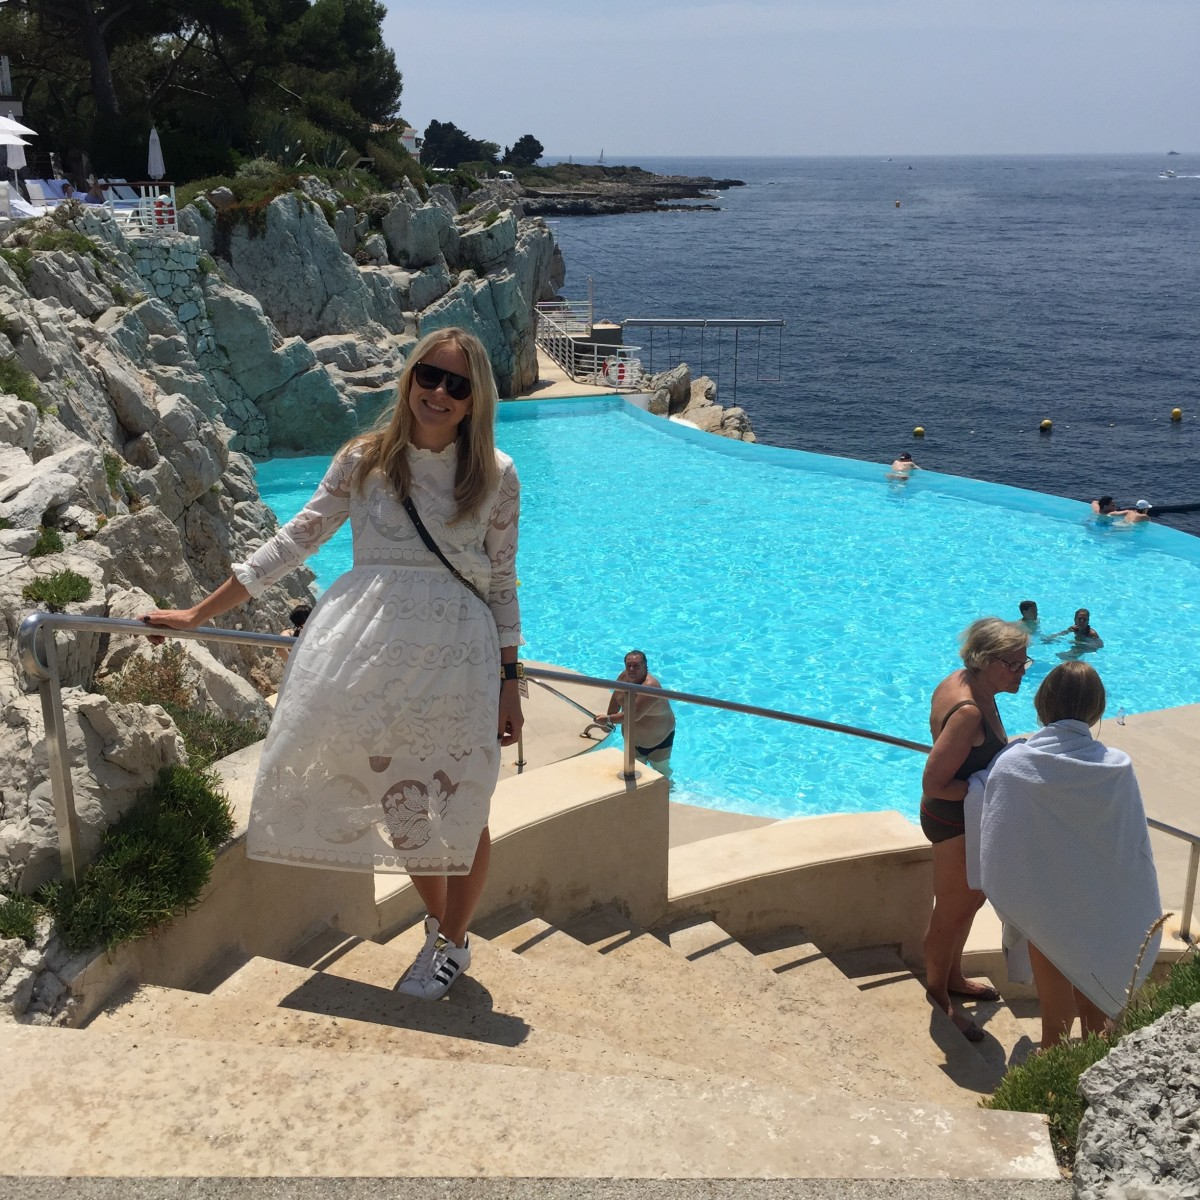 Hotel Du Cap Eden Roc Is Undoubtedly The Most Luxurious And Idyllic In World Nestled D Antibes On French Riviera